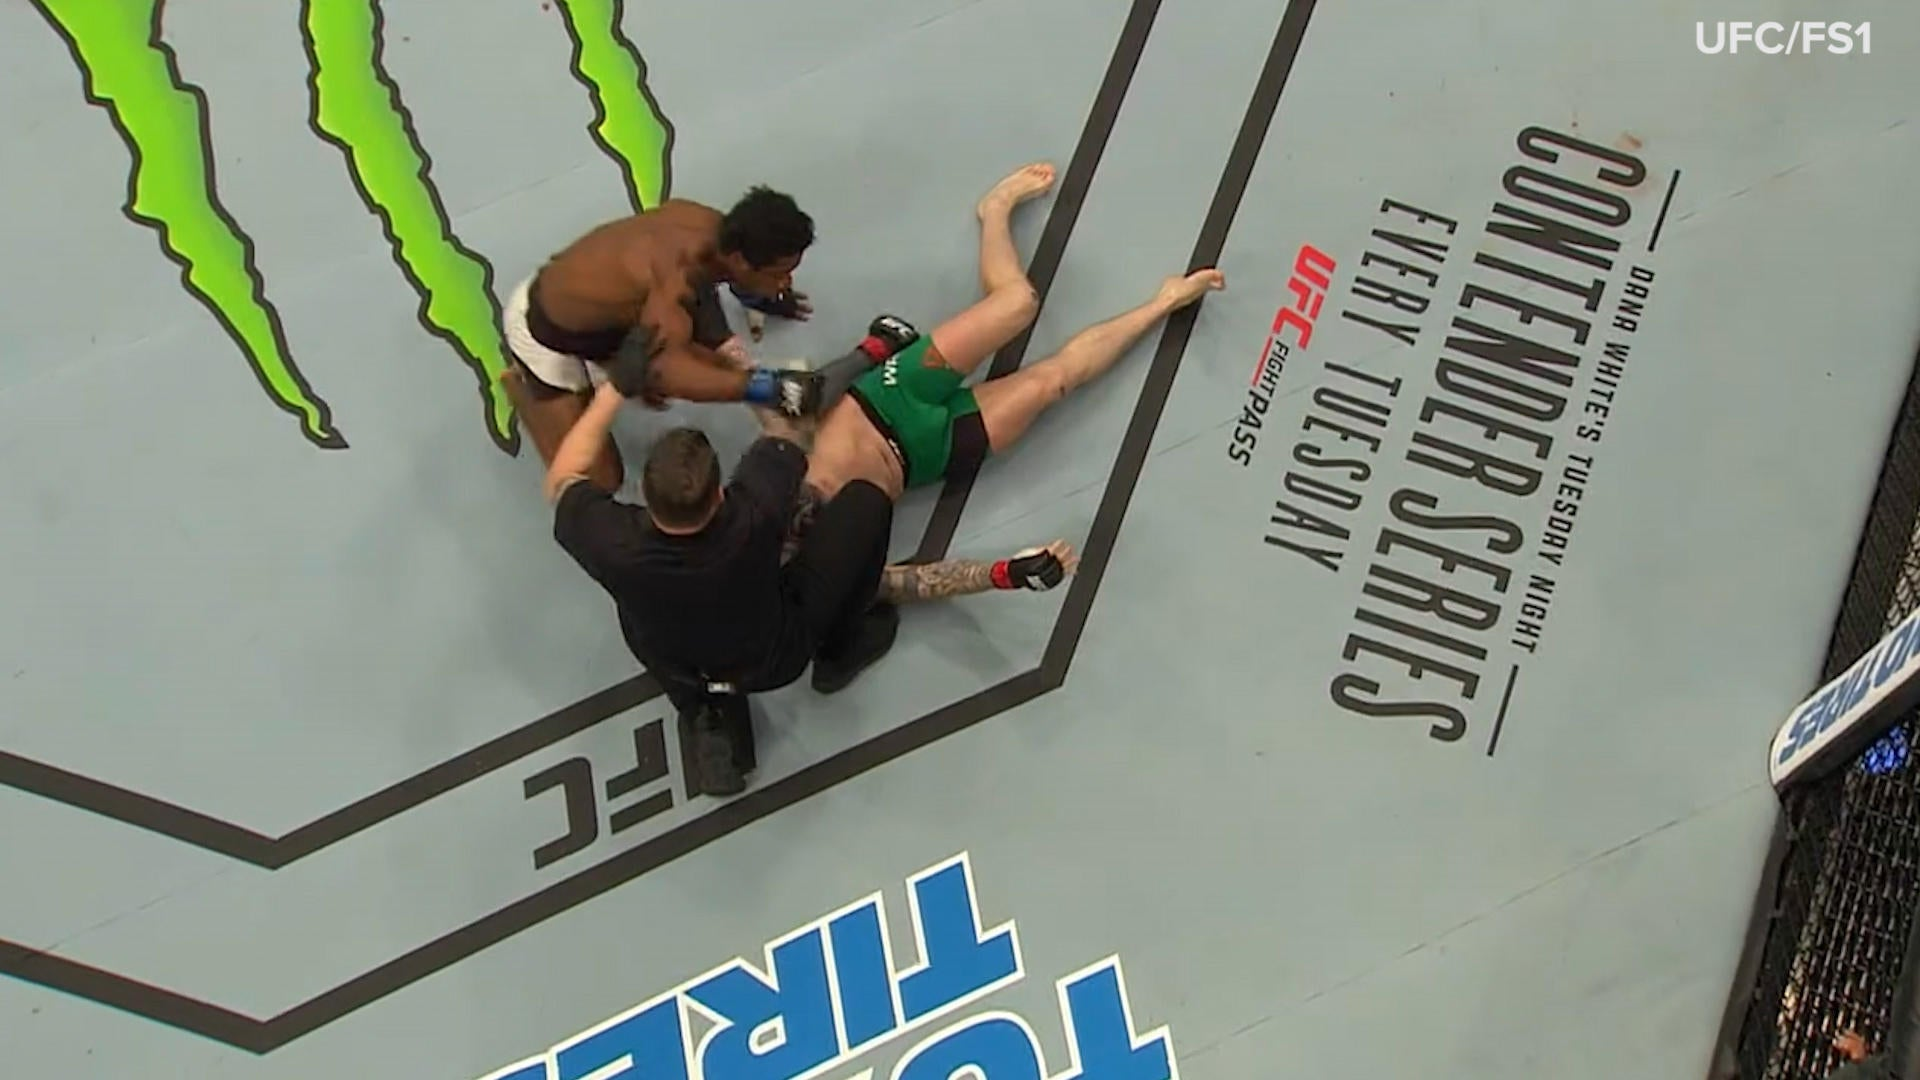 watch former alabama lb delivers vicious knockout in ufc debut